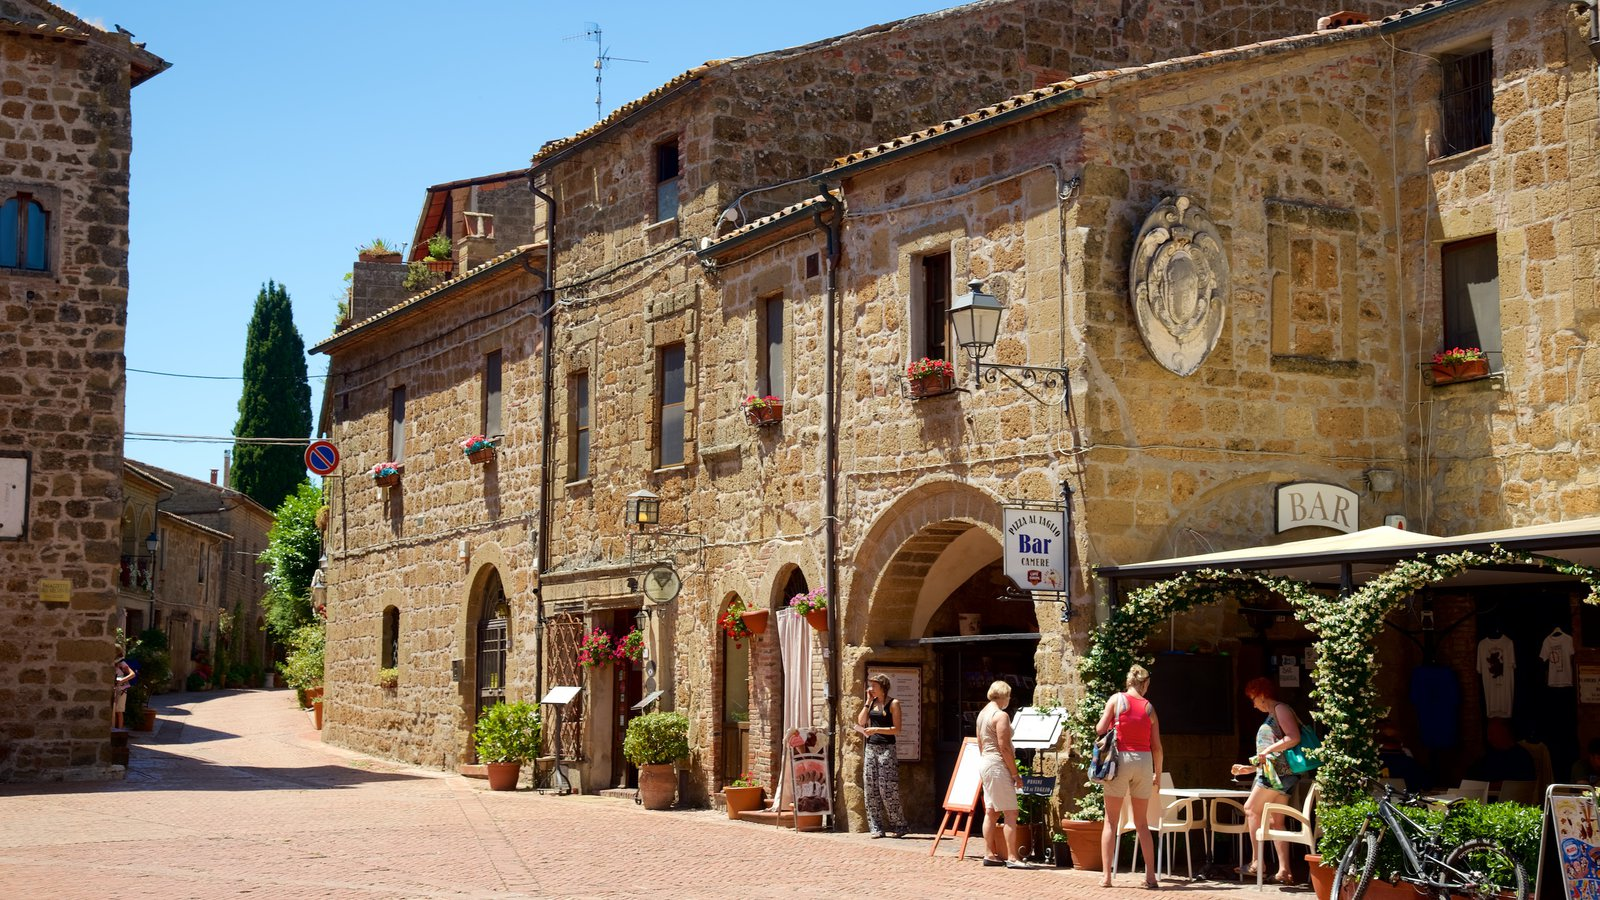 Sovana showing a small town or village